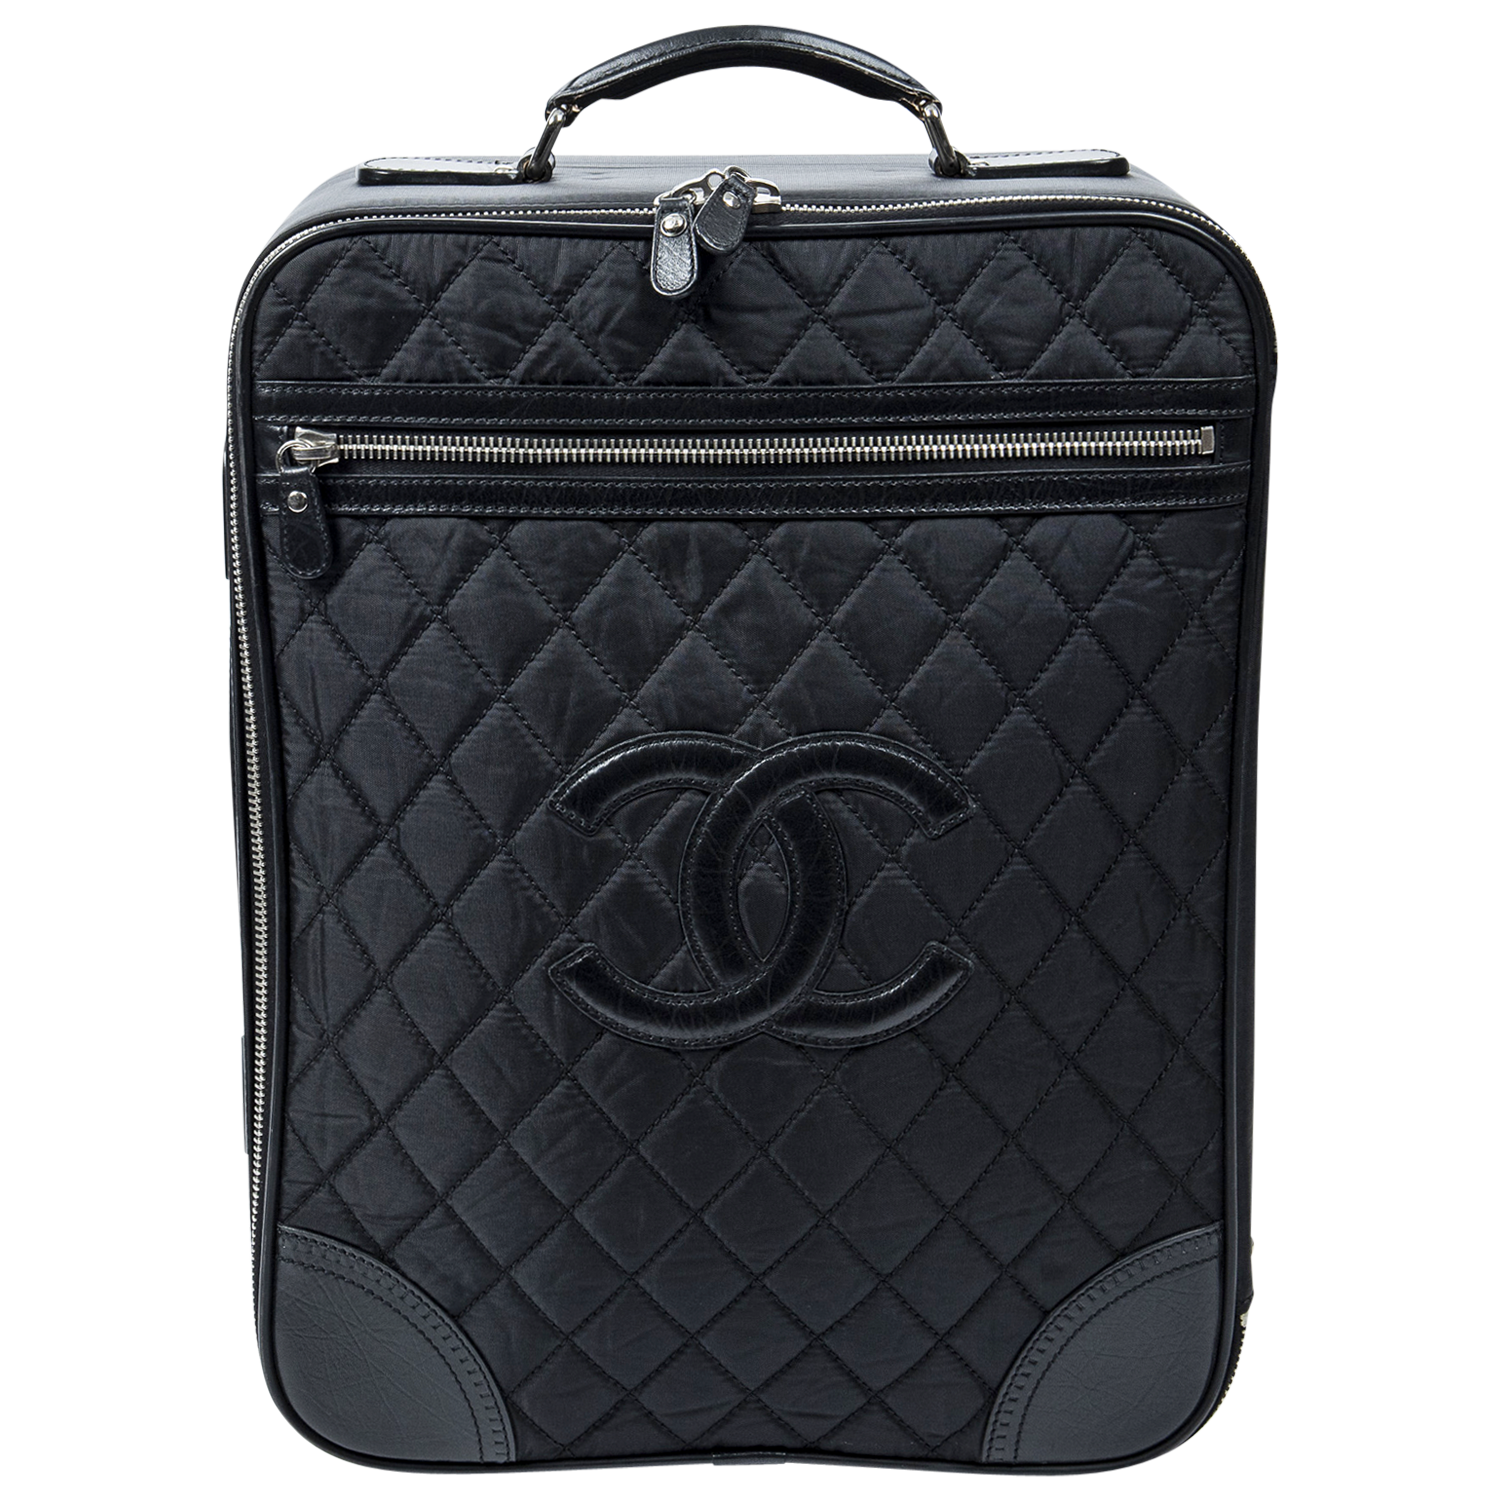 Chanel Black Quilted Nylon CC Trolley